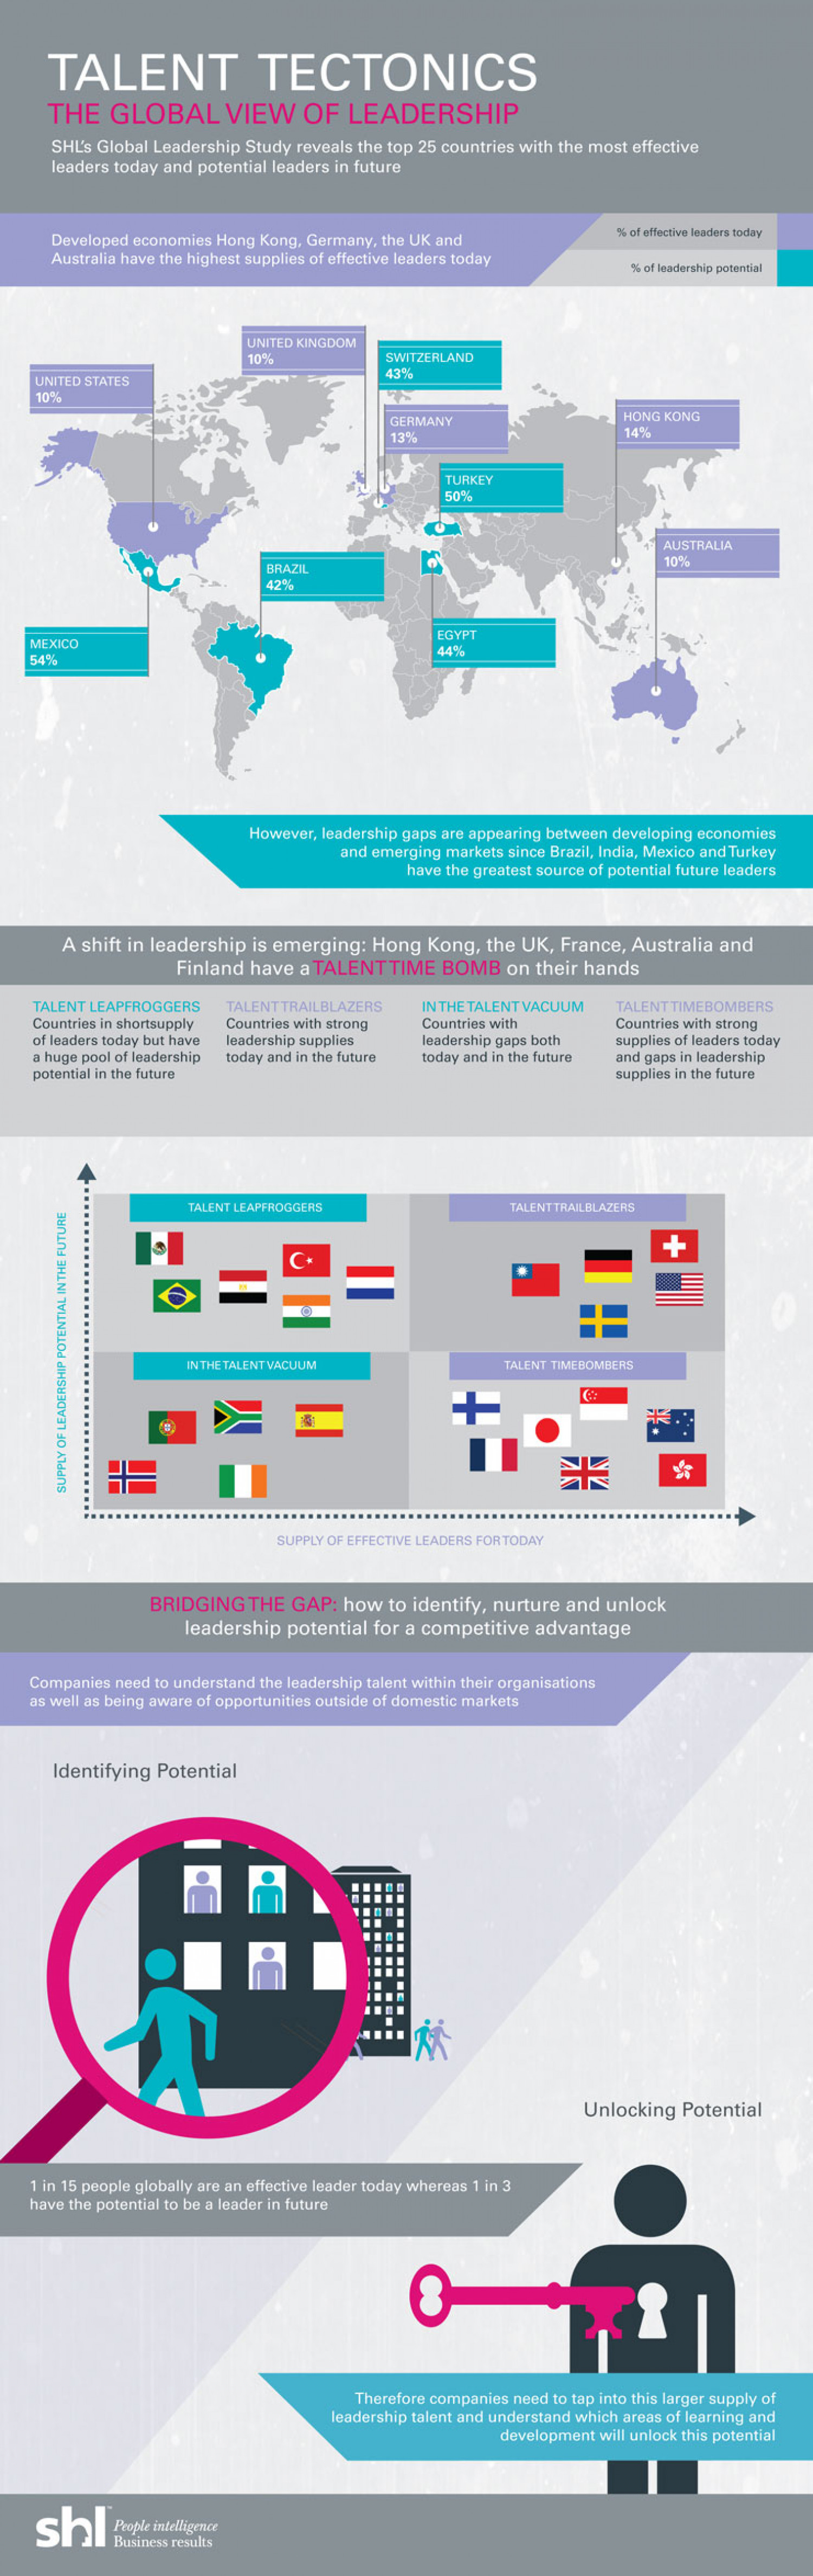 Talent Tectonics - The Global view of Leadership Infographic